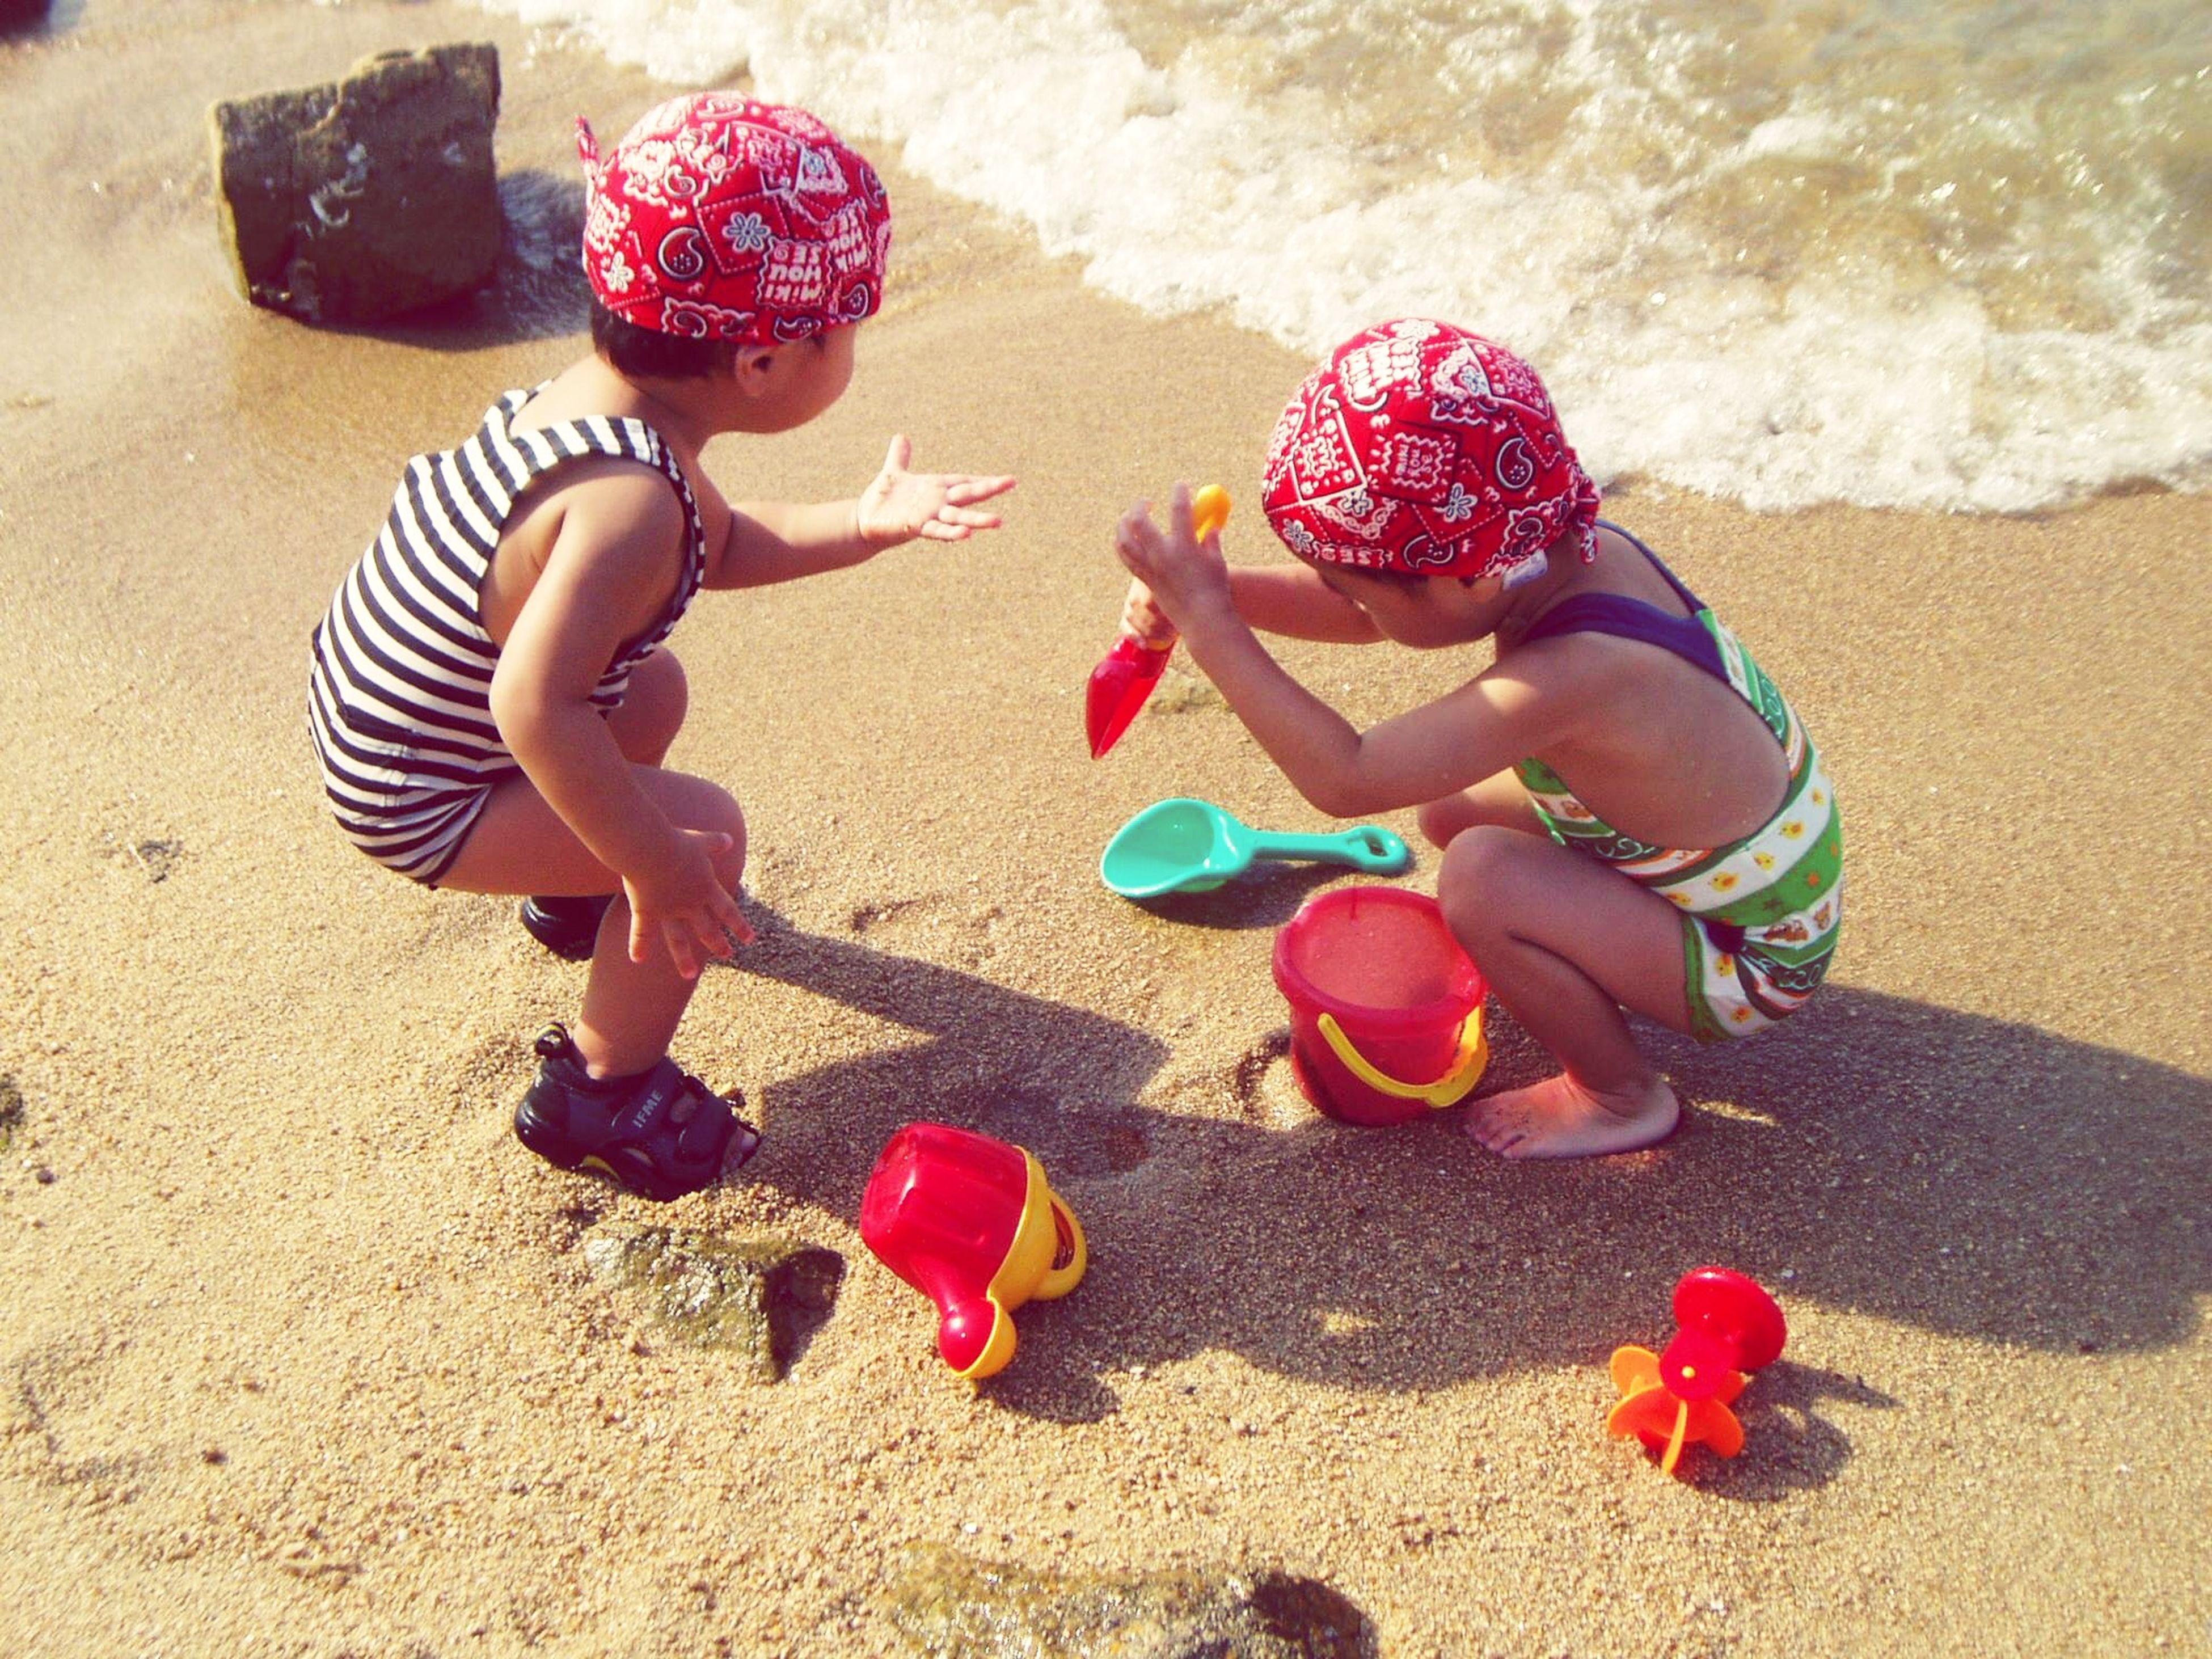 sand, beach, high angle view, sunlight, red, childhood, shadow, shore, day, lifestyles, leisure activity, person, outdoors, pink color, toy, love, vacations, still life